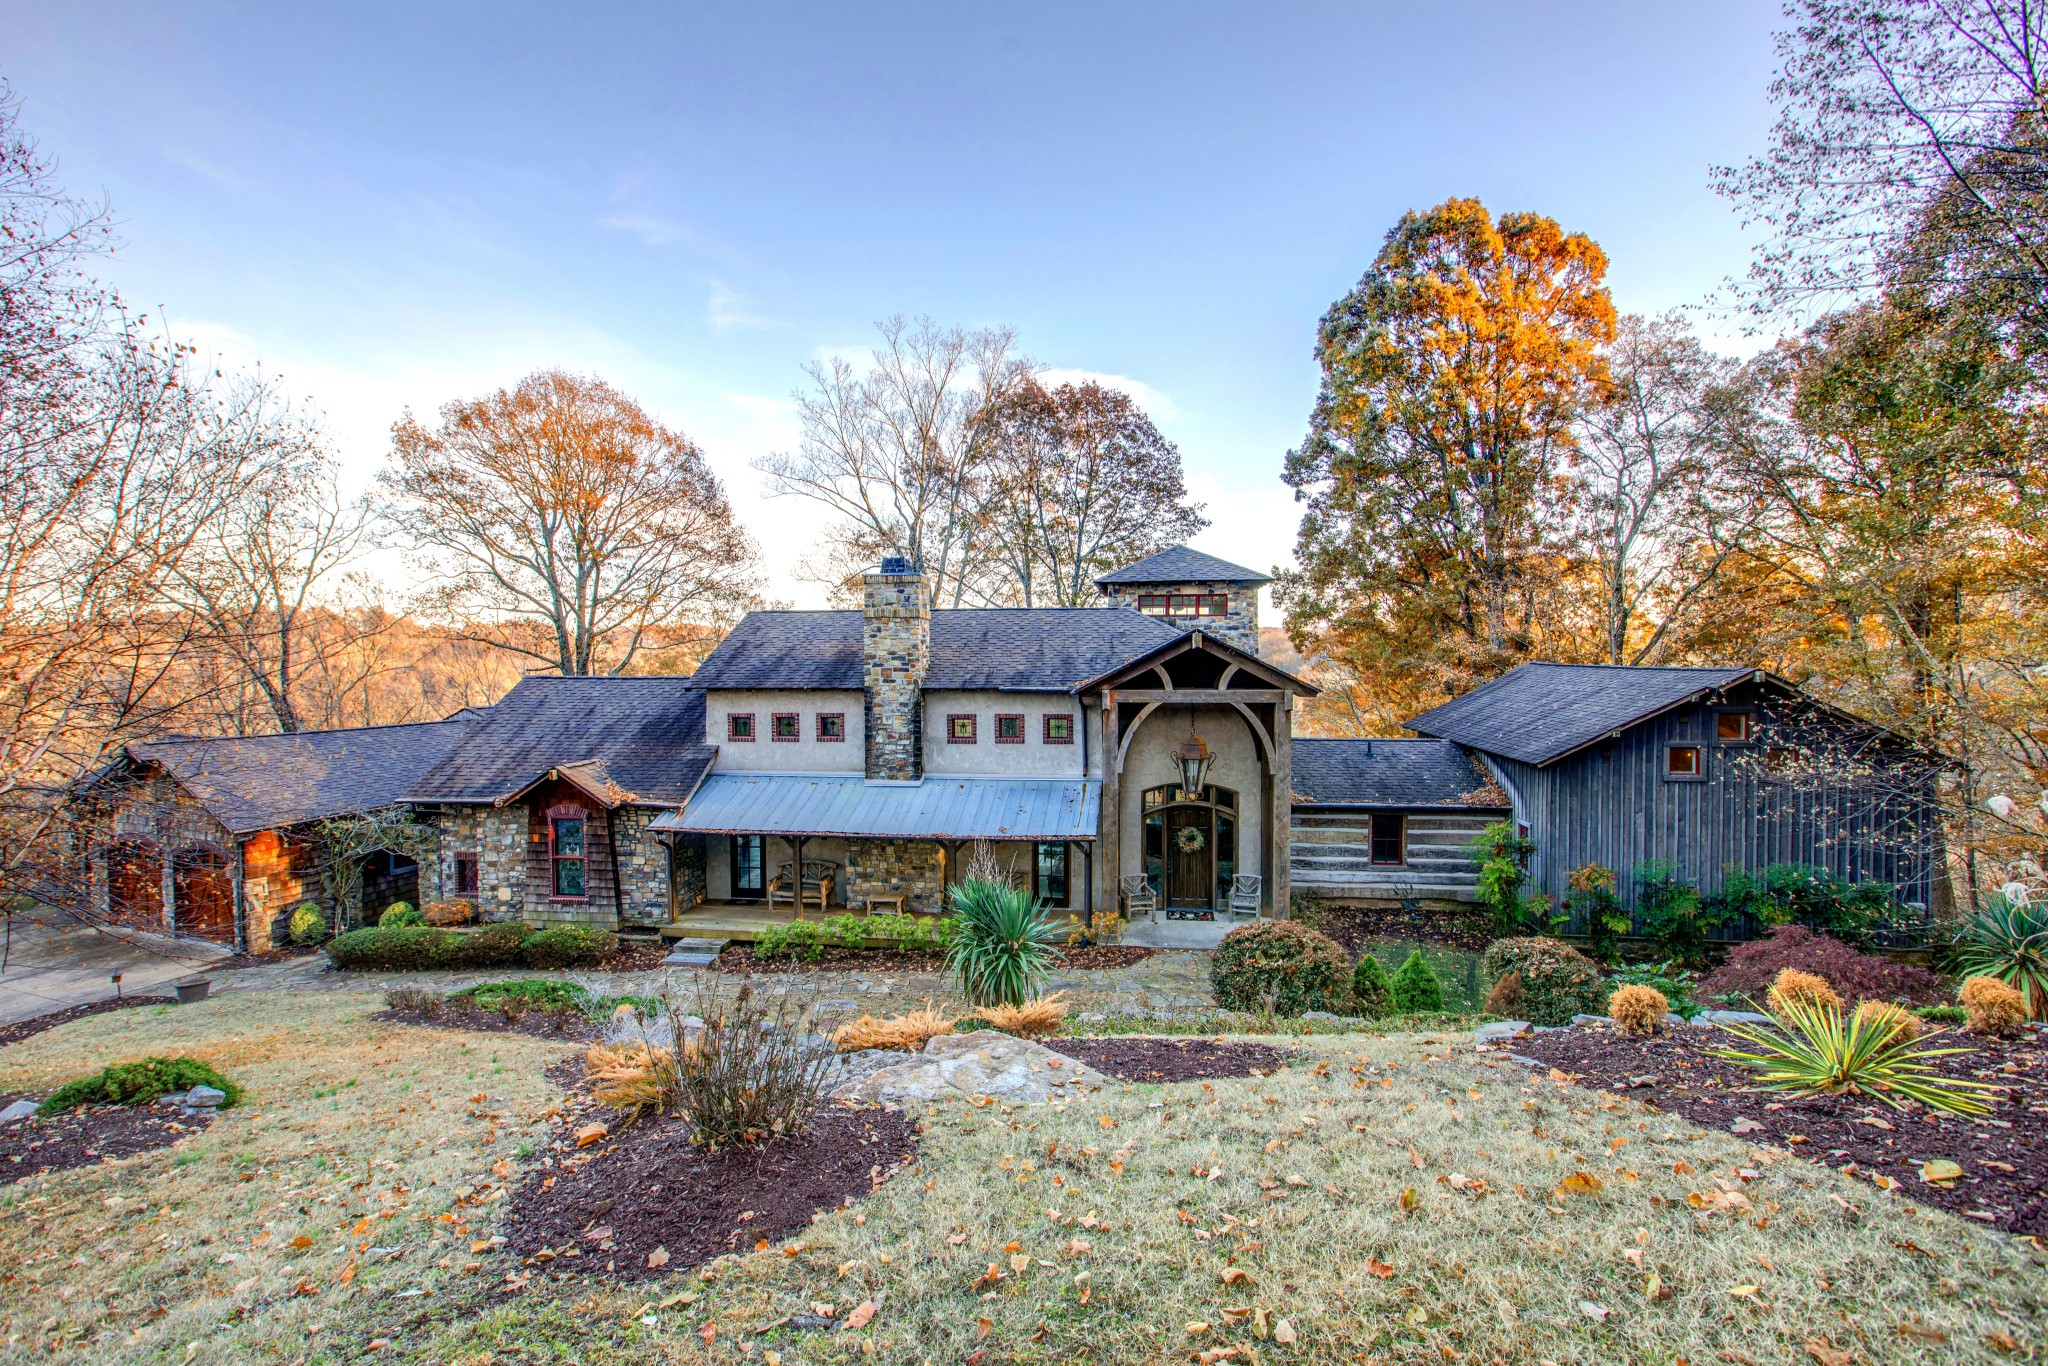 1007A Highland Rd, Brentwood, TN 37027 - Brentwood, TN real estate listing